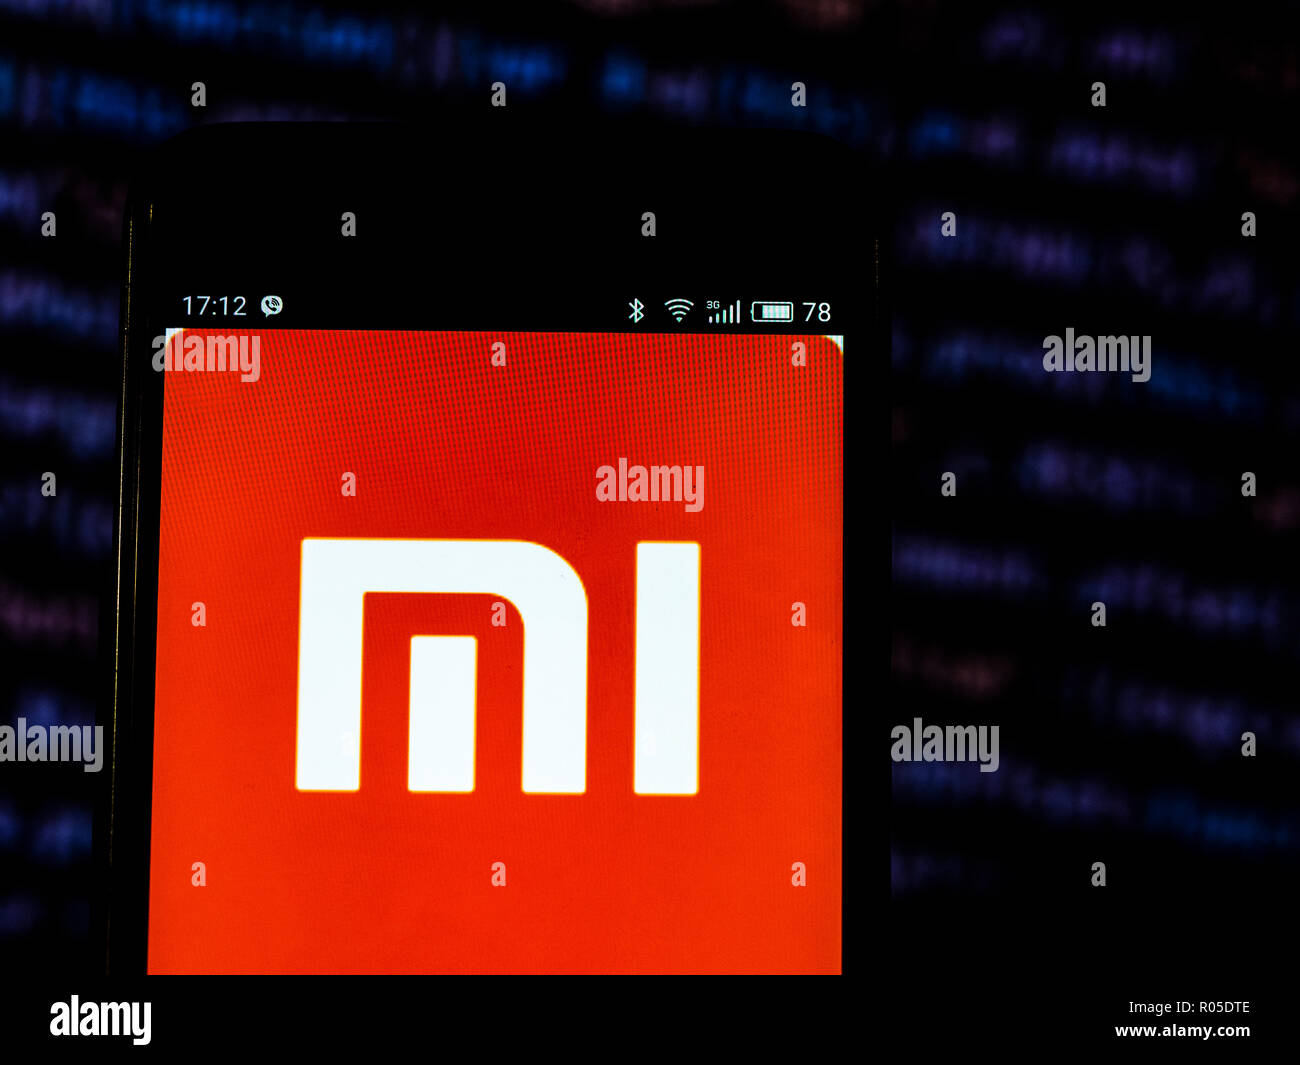 Xiaomi Consumer electronics company logo seen displayed on